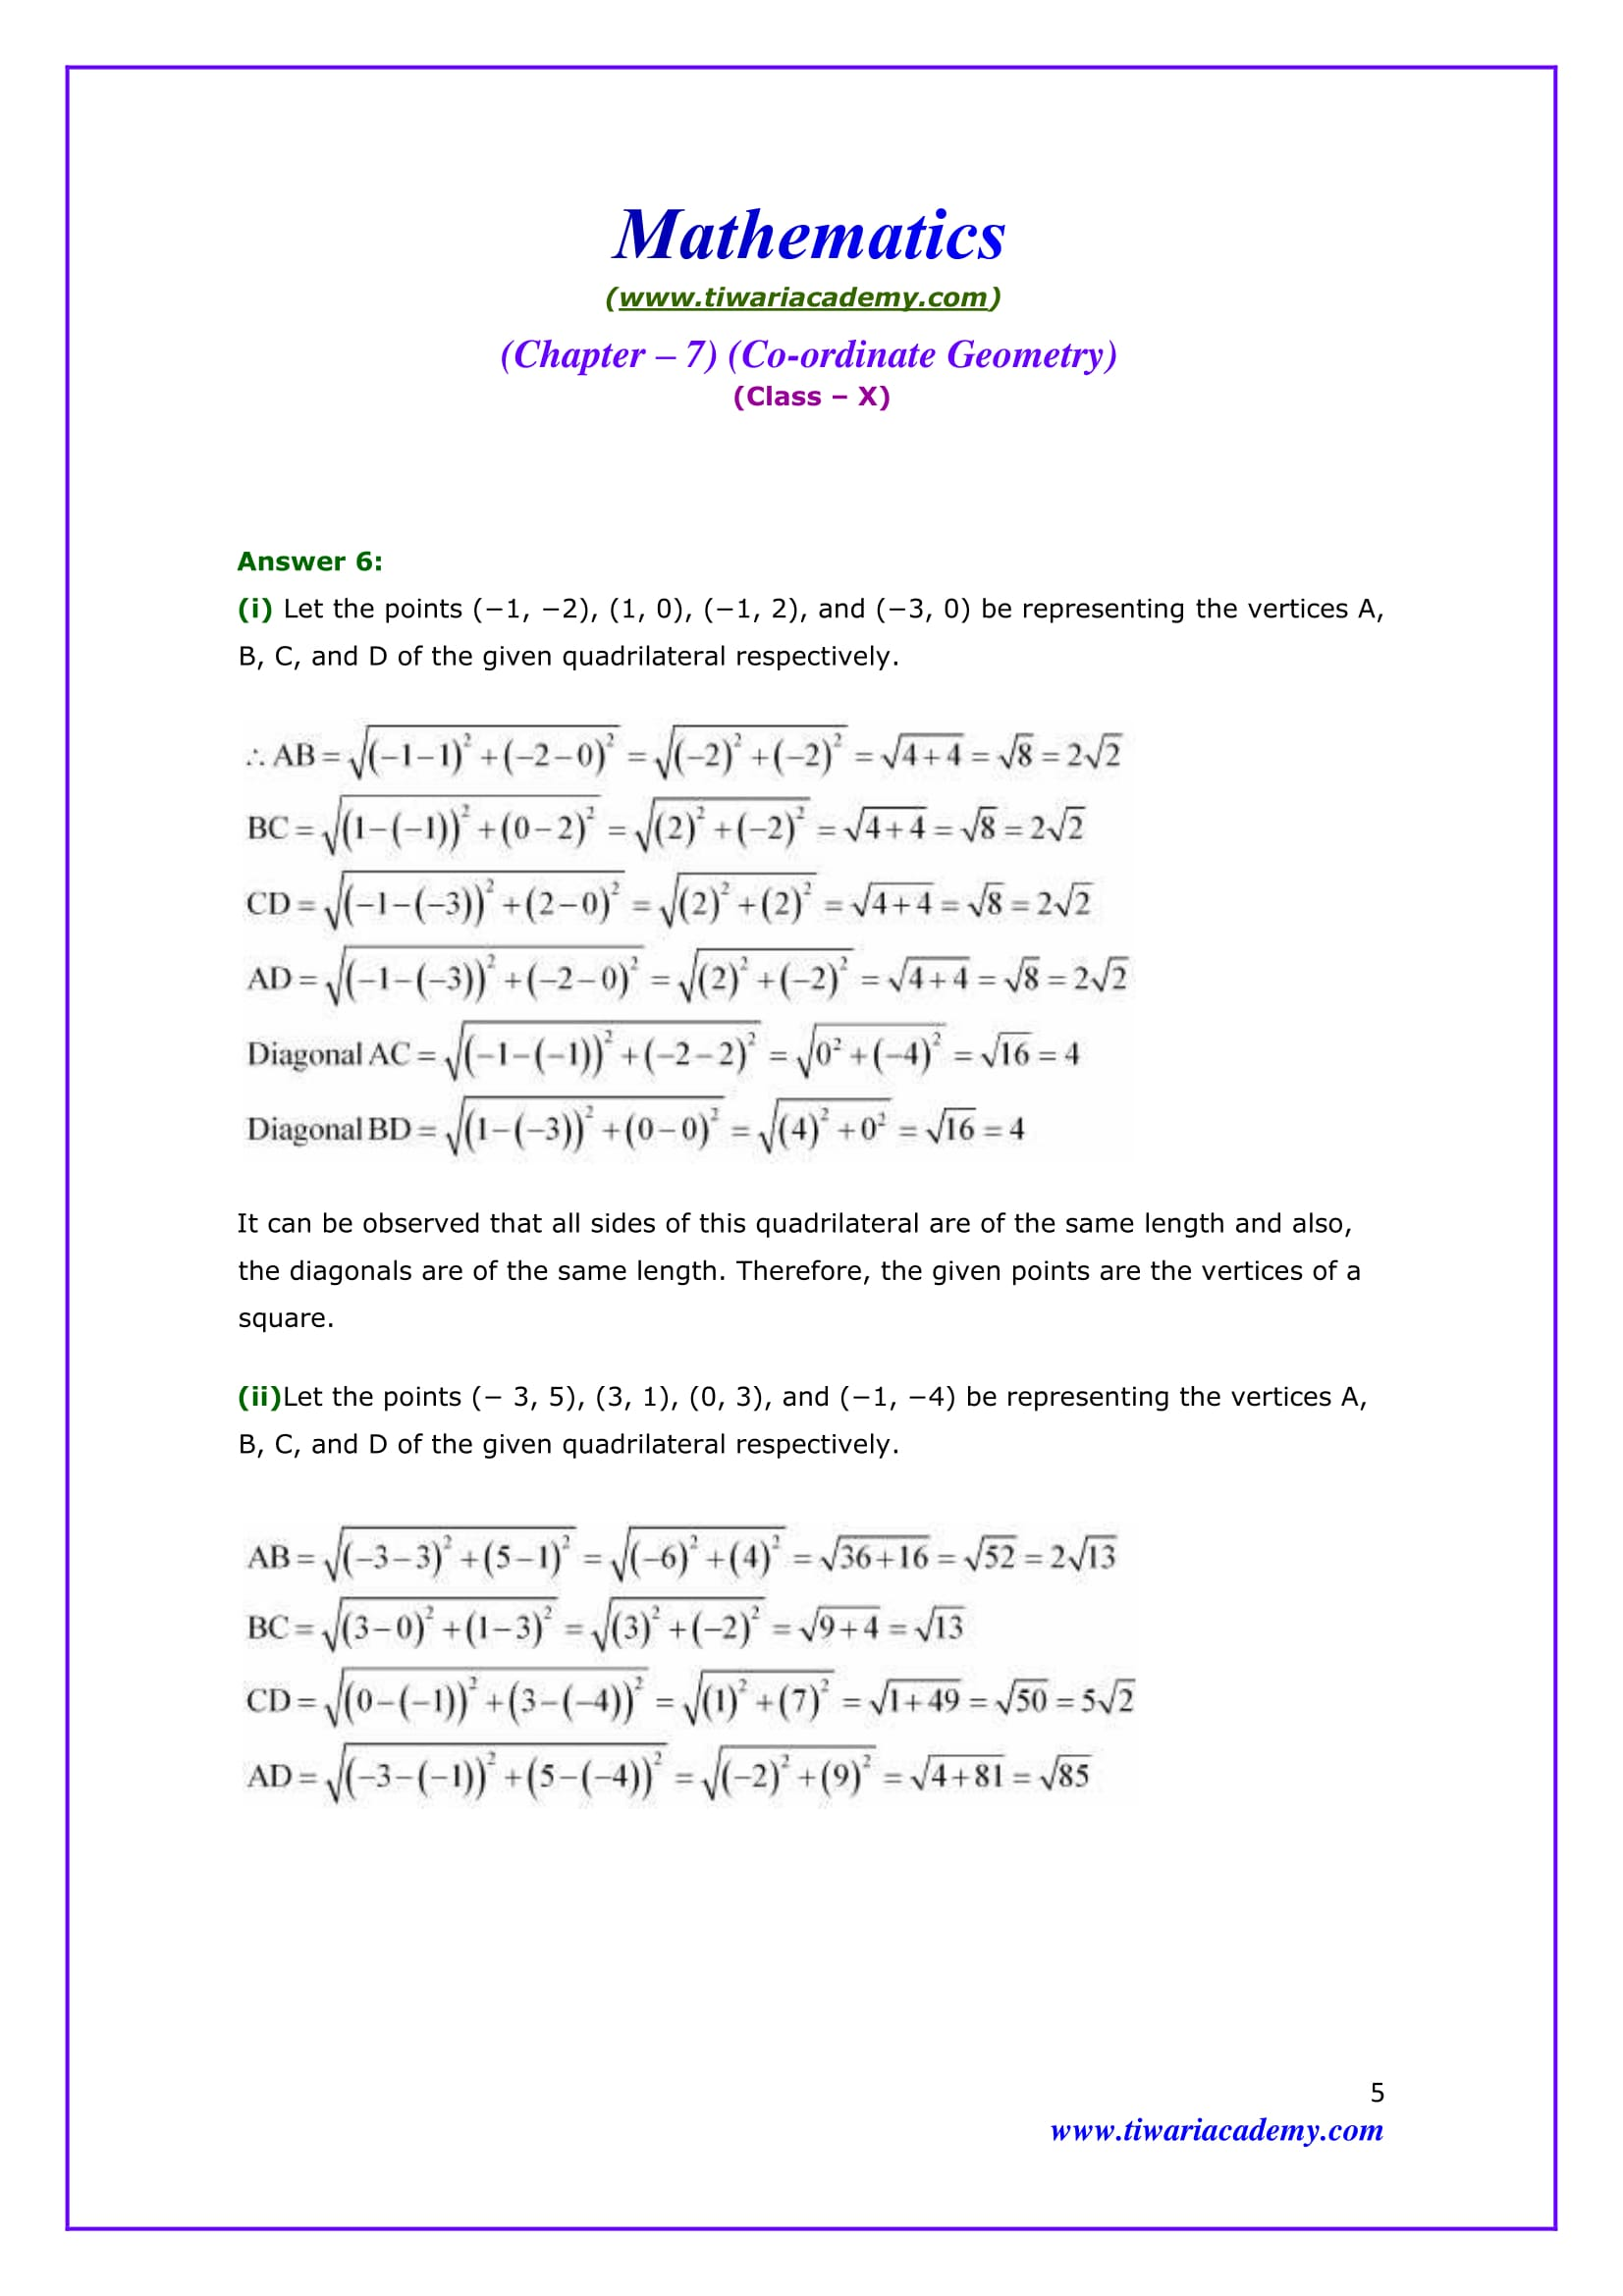 NCERT Solutions for Class 10 Maths Chapter 7 Exercise 7.1 Question 6 Answer